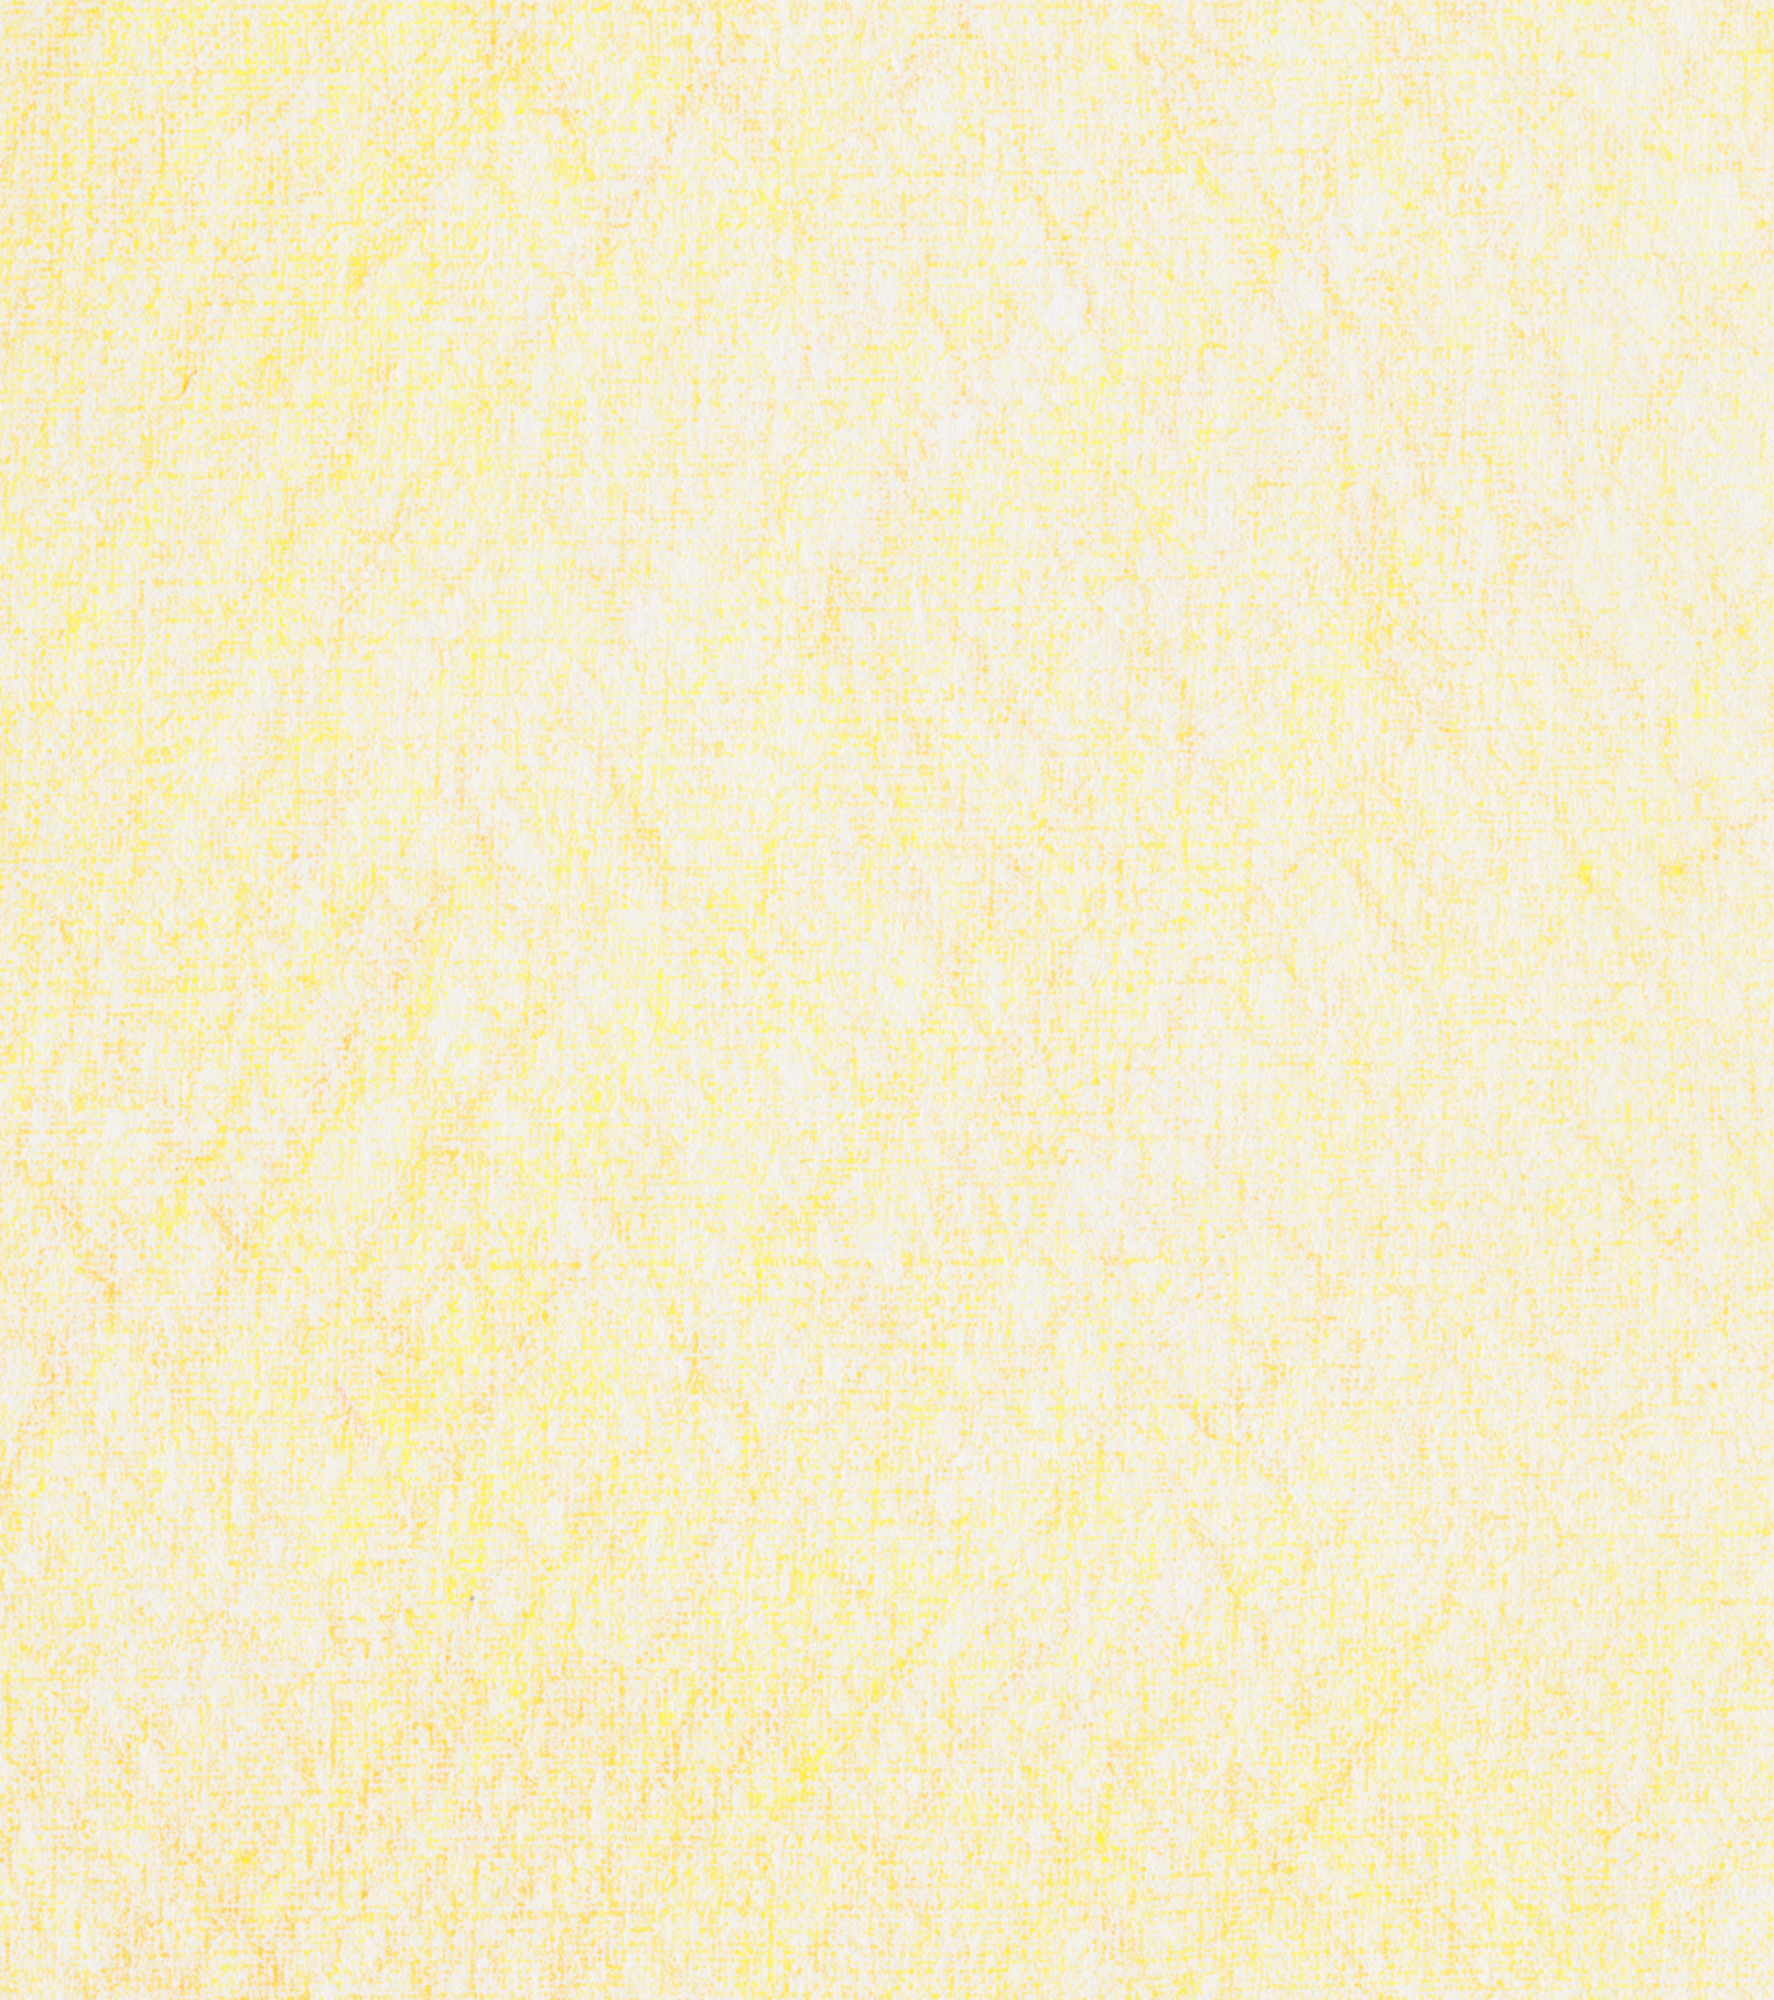 Coloured Pencils Texture - Yellow by TinyWild on DeviantArt